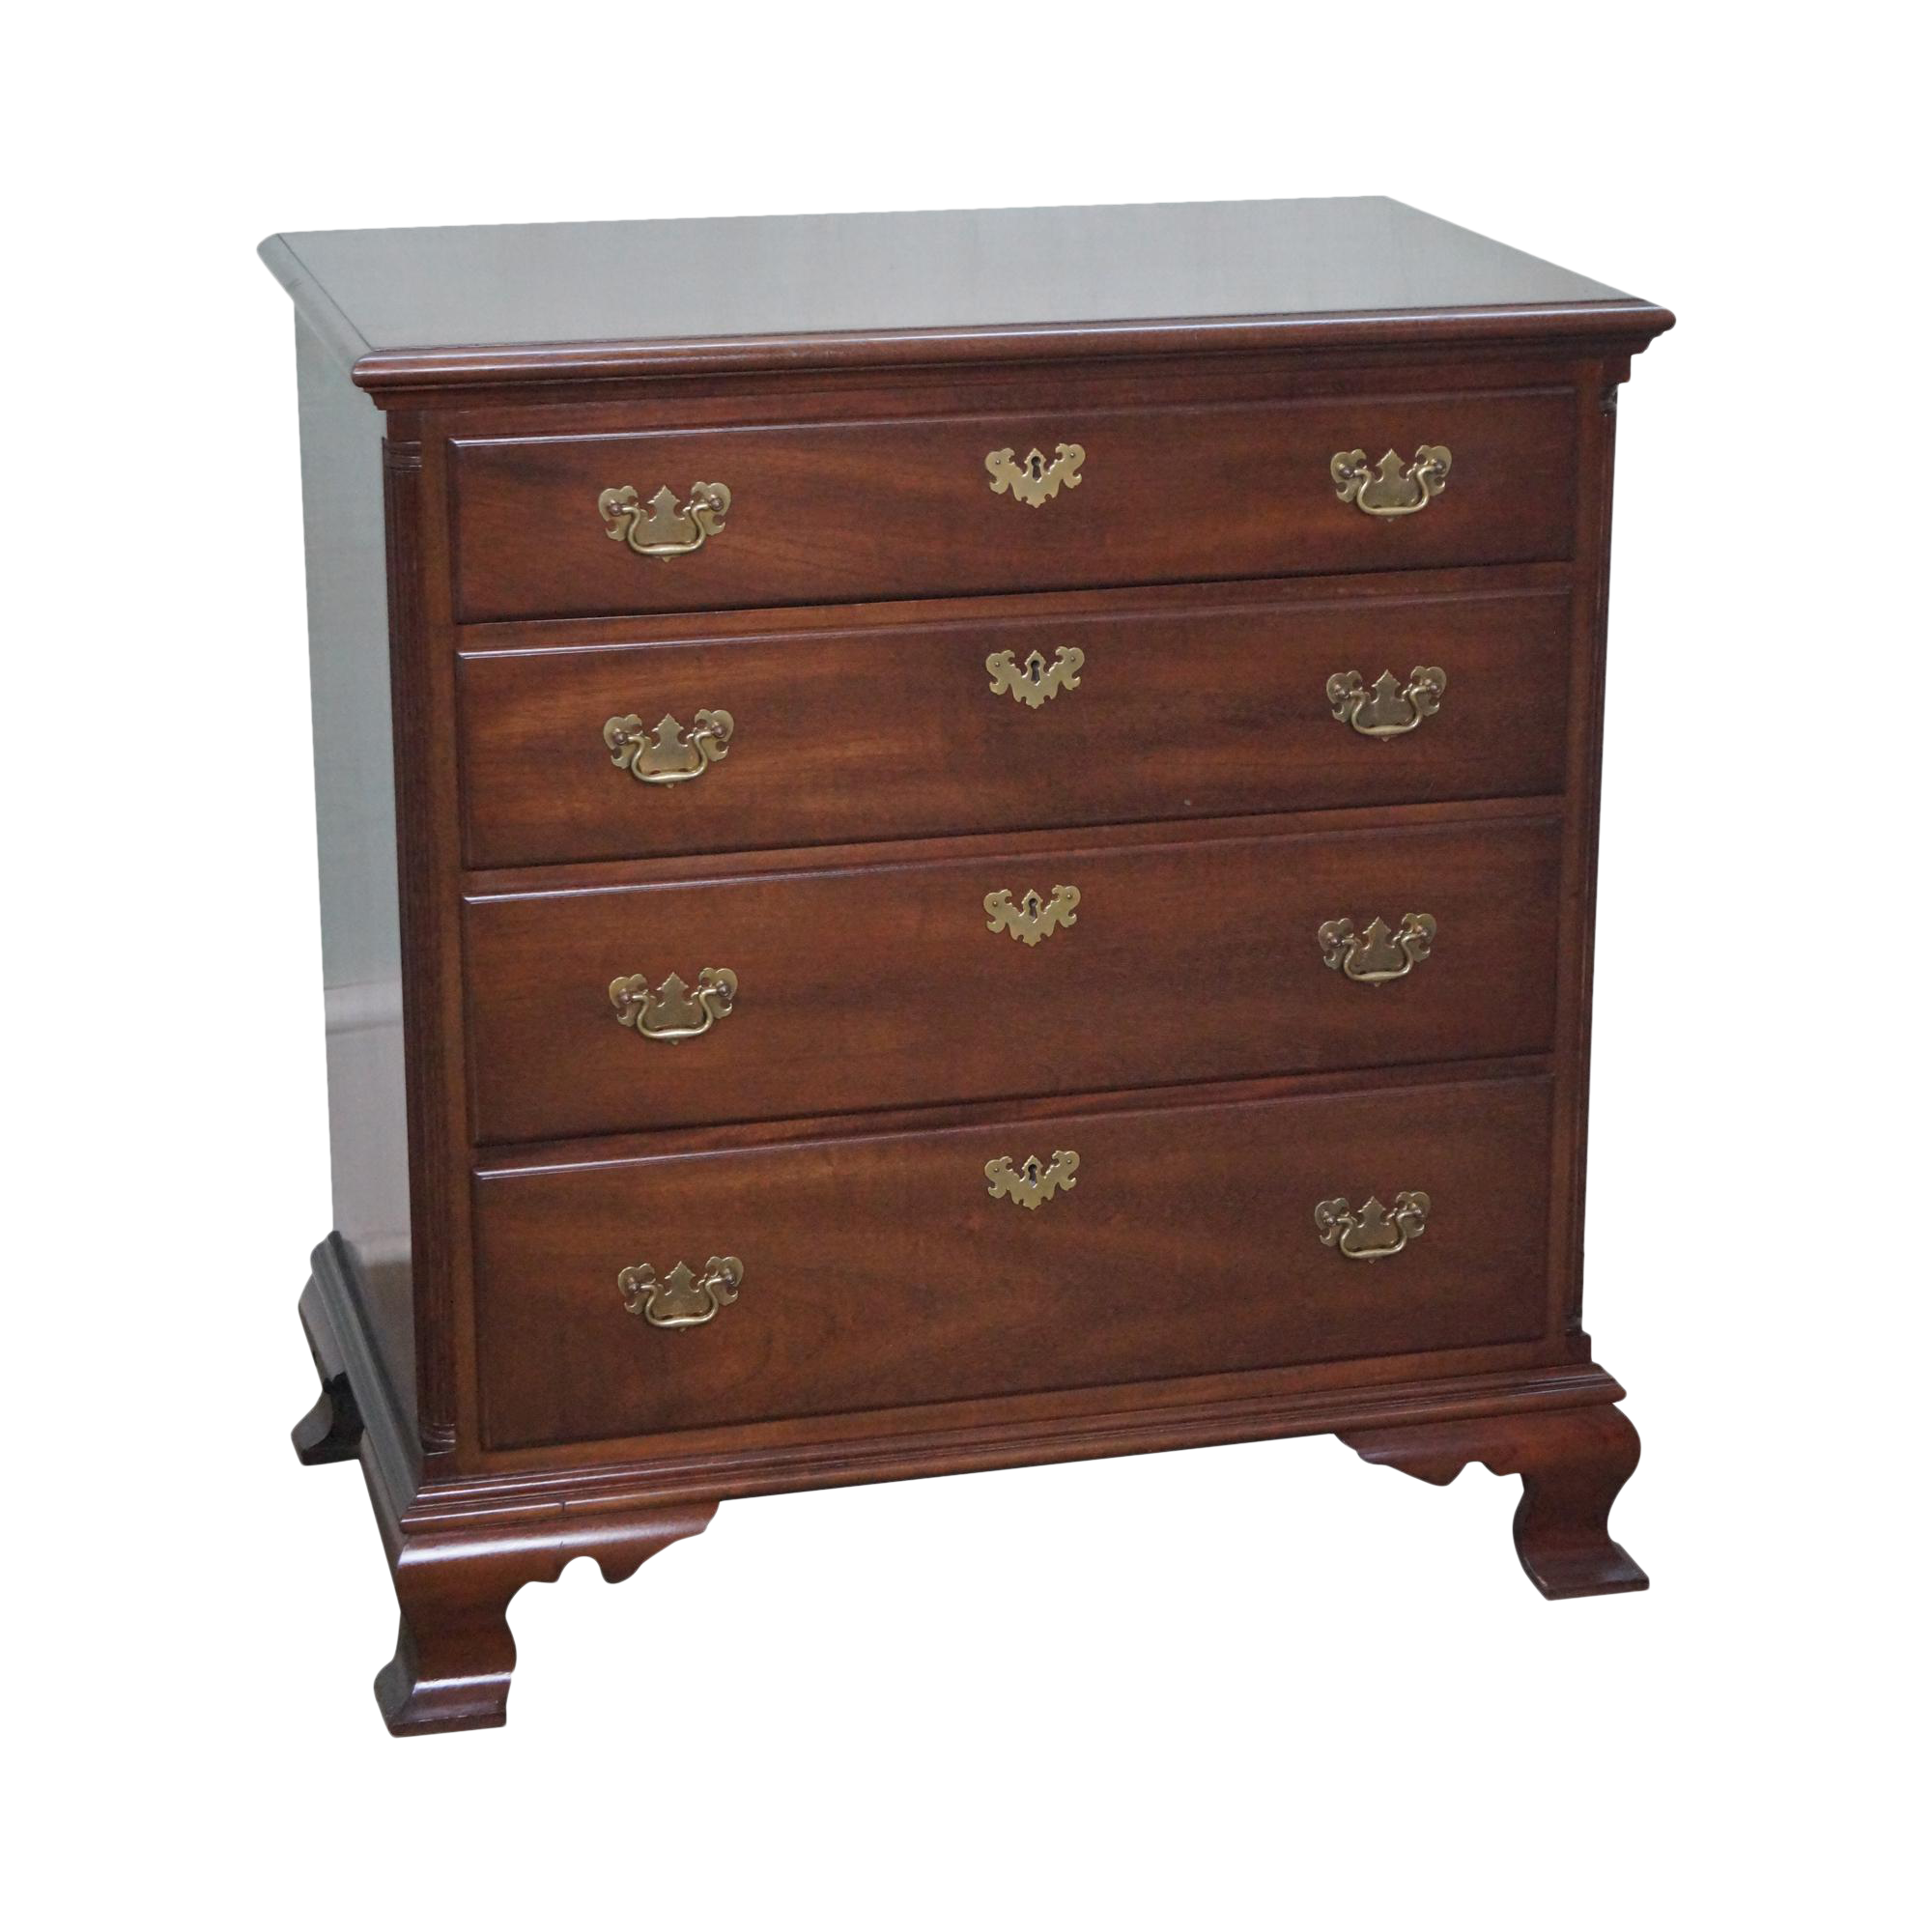 Kittinger Old Dominion Mahogany Chippendale Style Chest Of Drawers Chairish